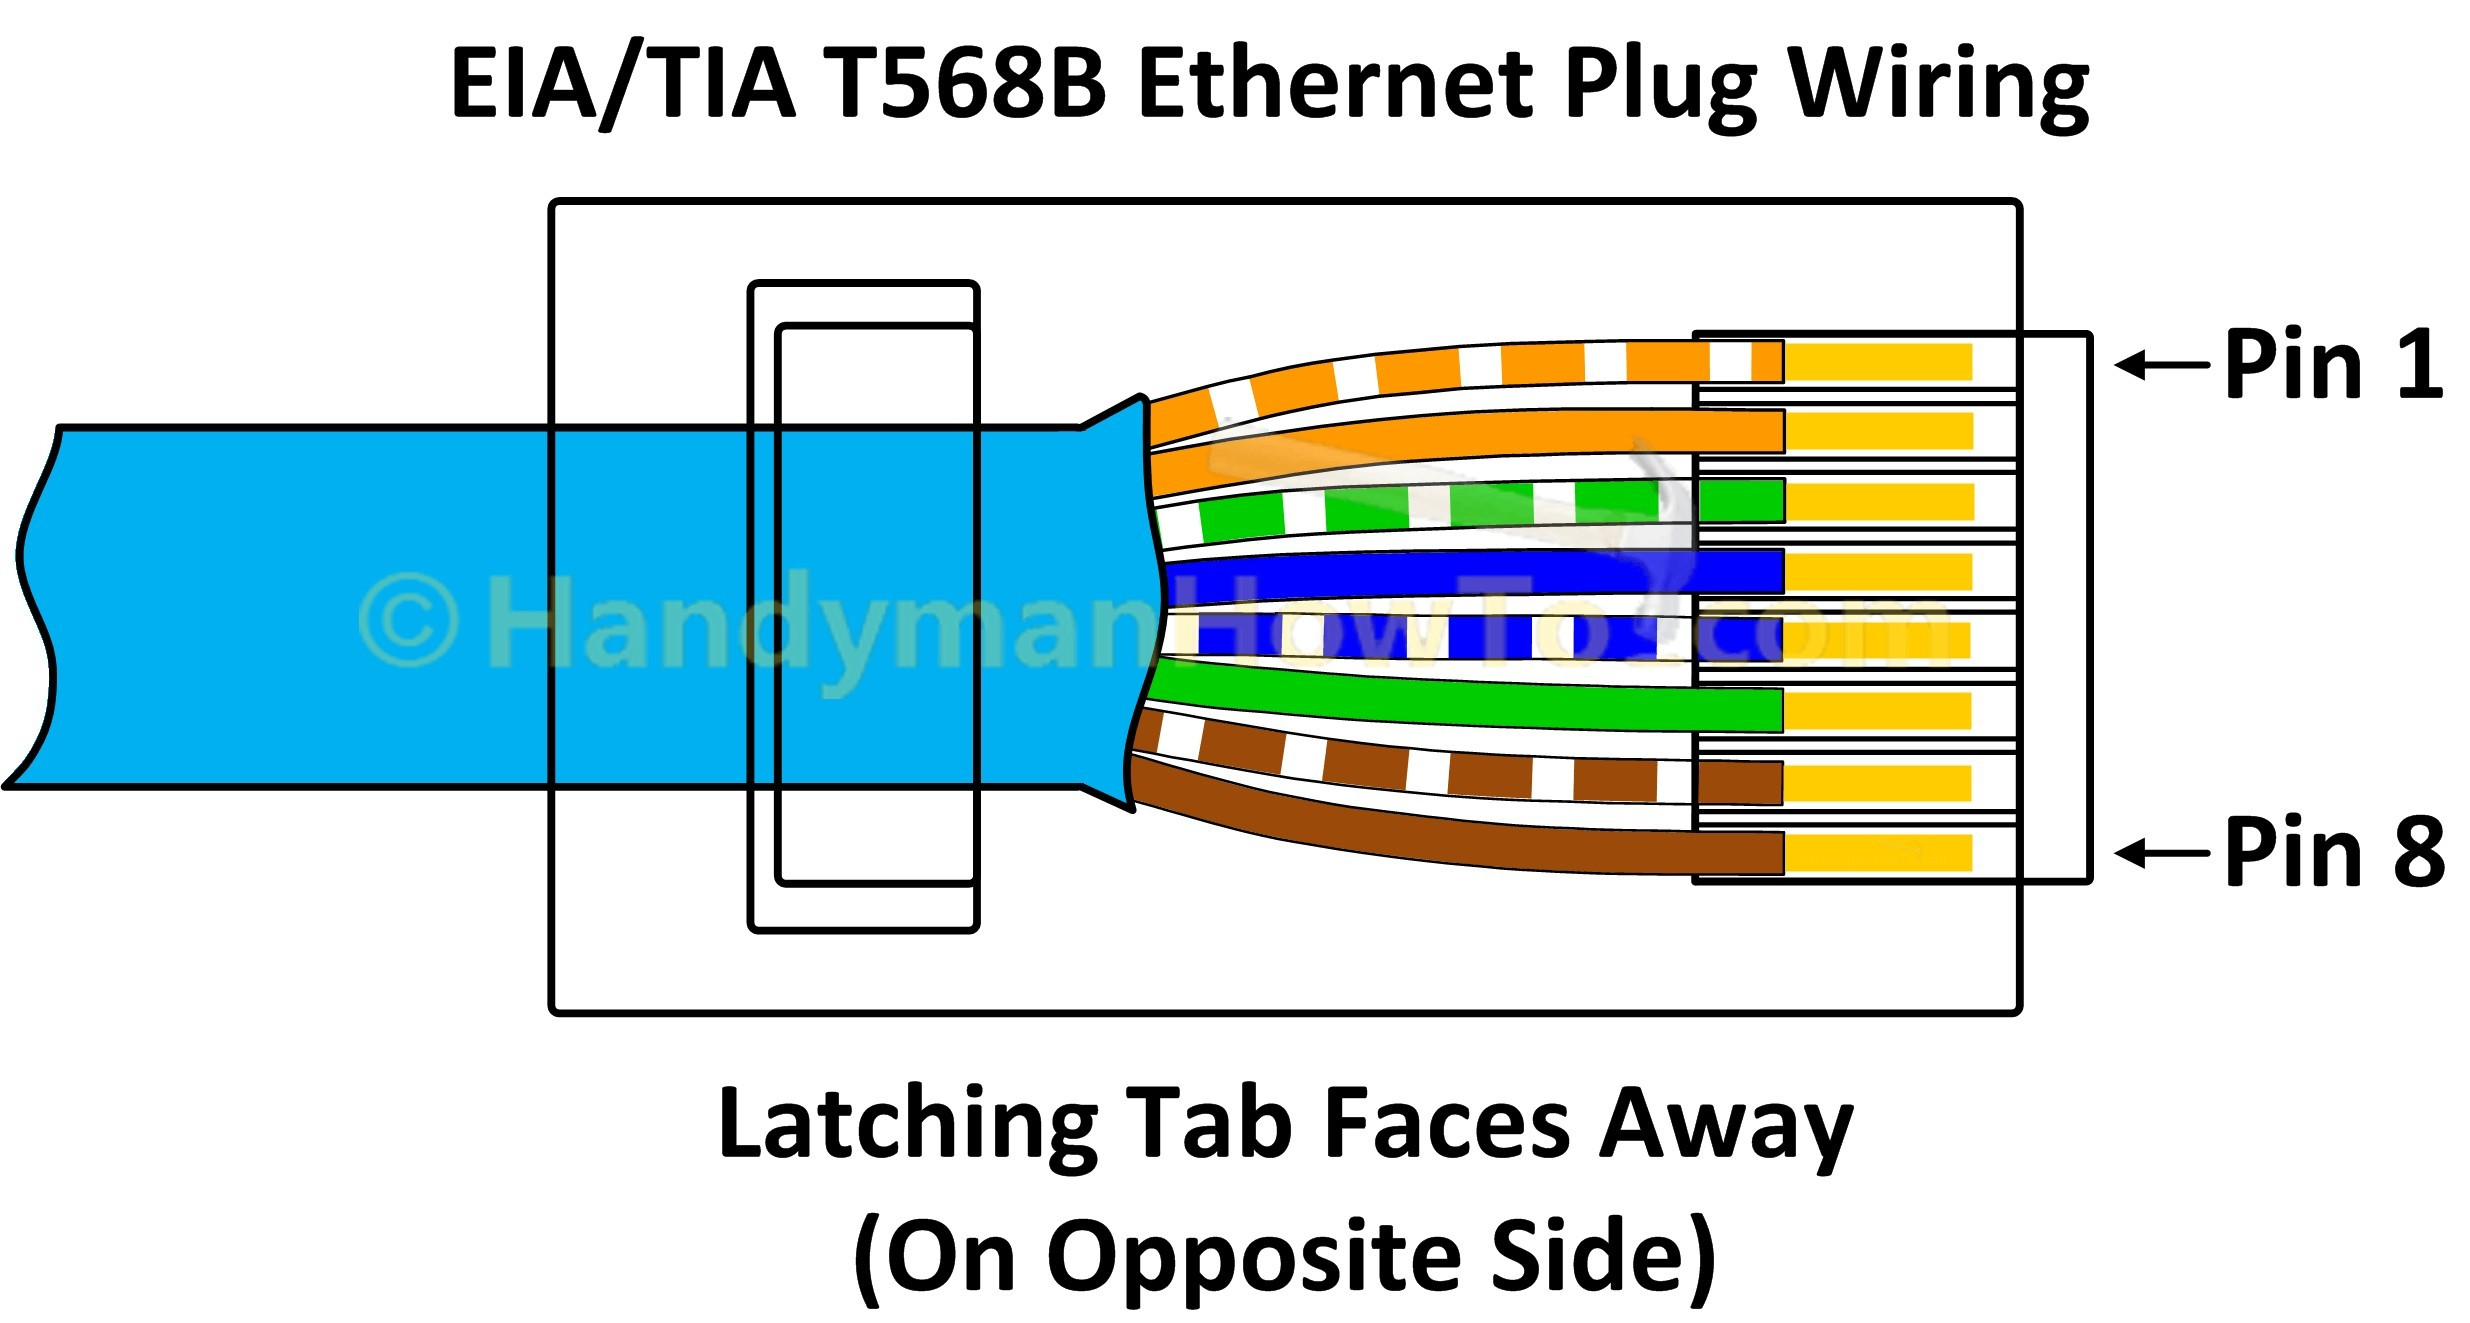 cat 6 568c wiring diagram download wiring diagrams u2022 rh wiringdiagramblog today Starrett 568C Tia C